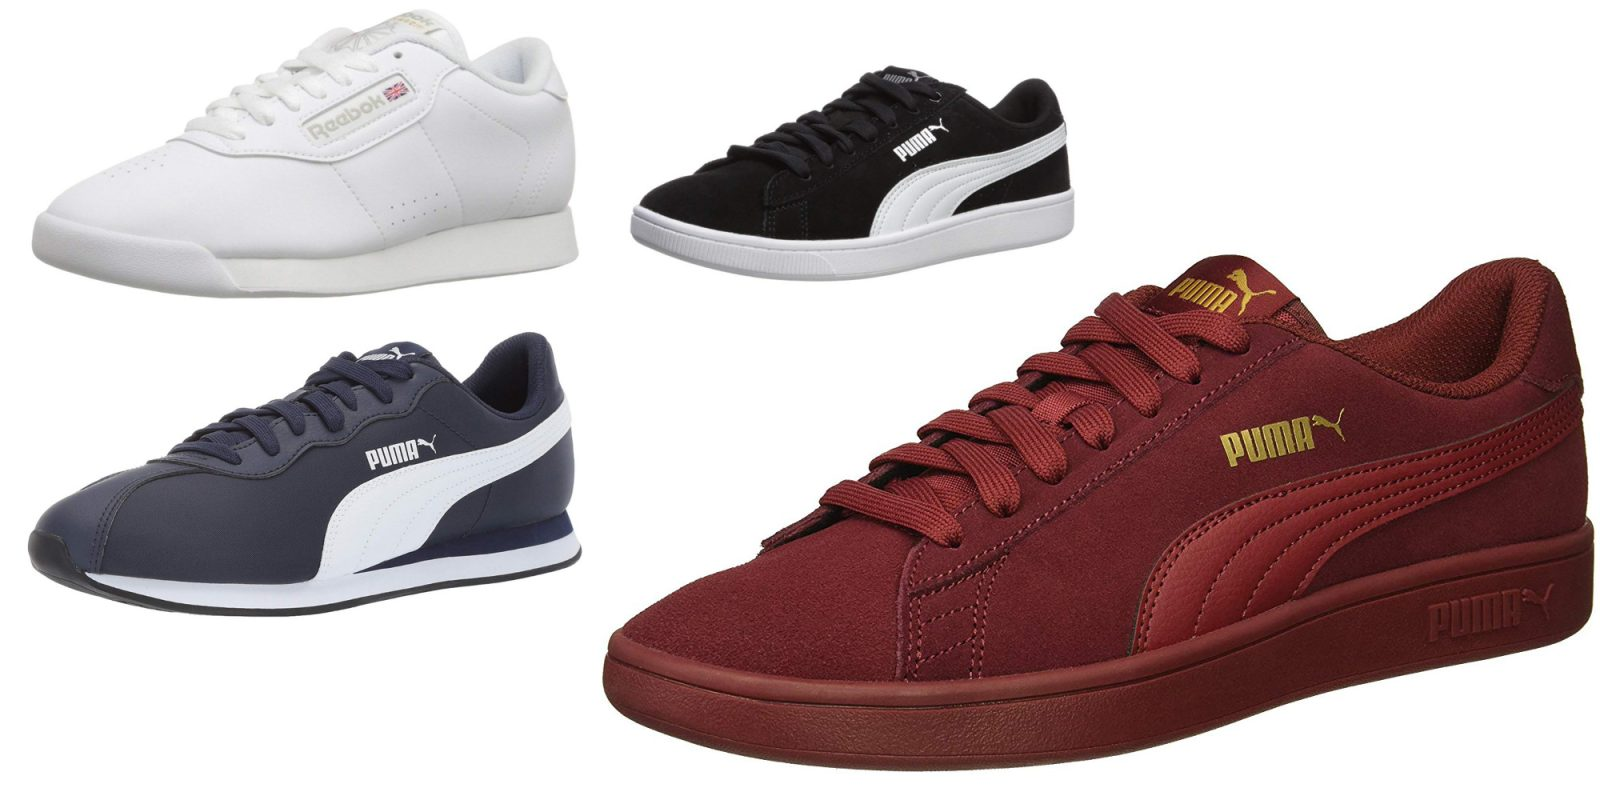 e8b4e5078 Classic Reebok and PUMA sneakers from $22.50 for Prime members (Up to 50%  off)